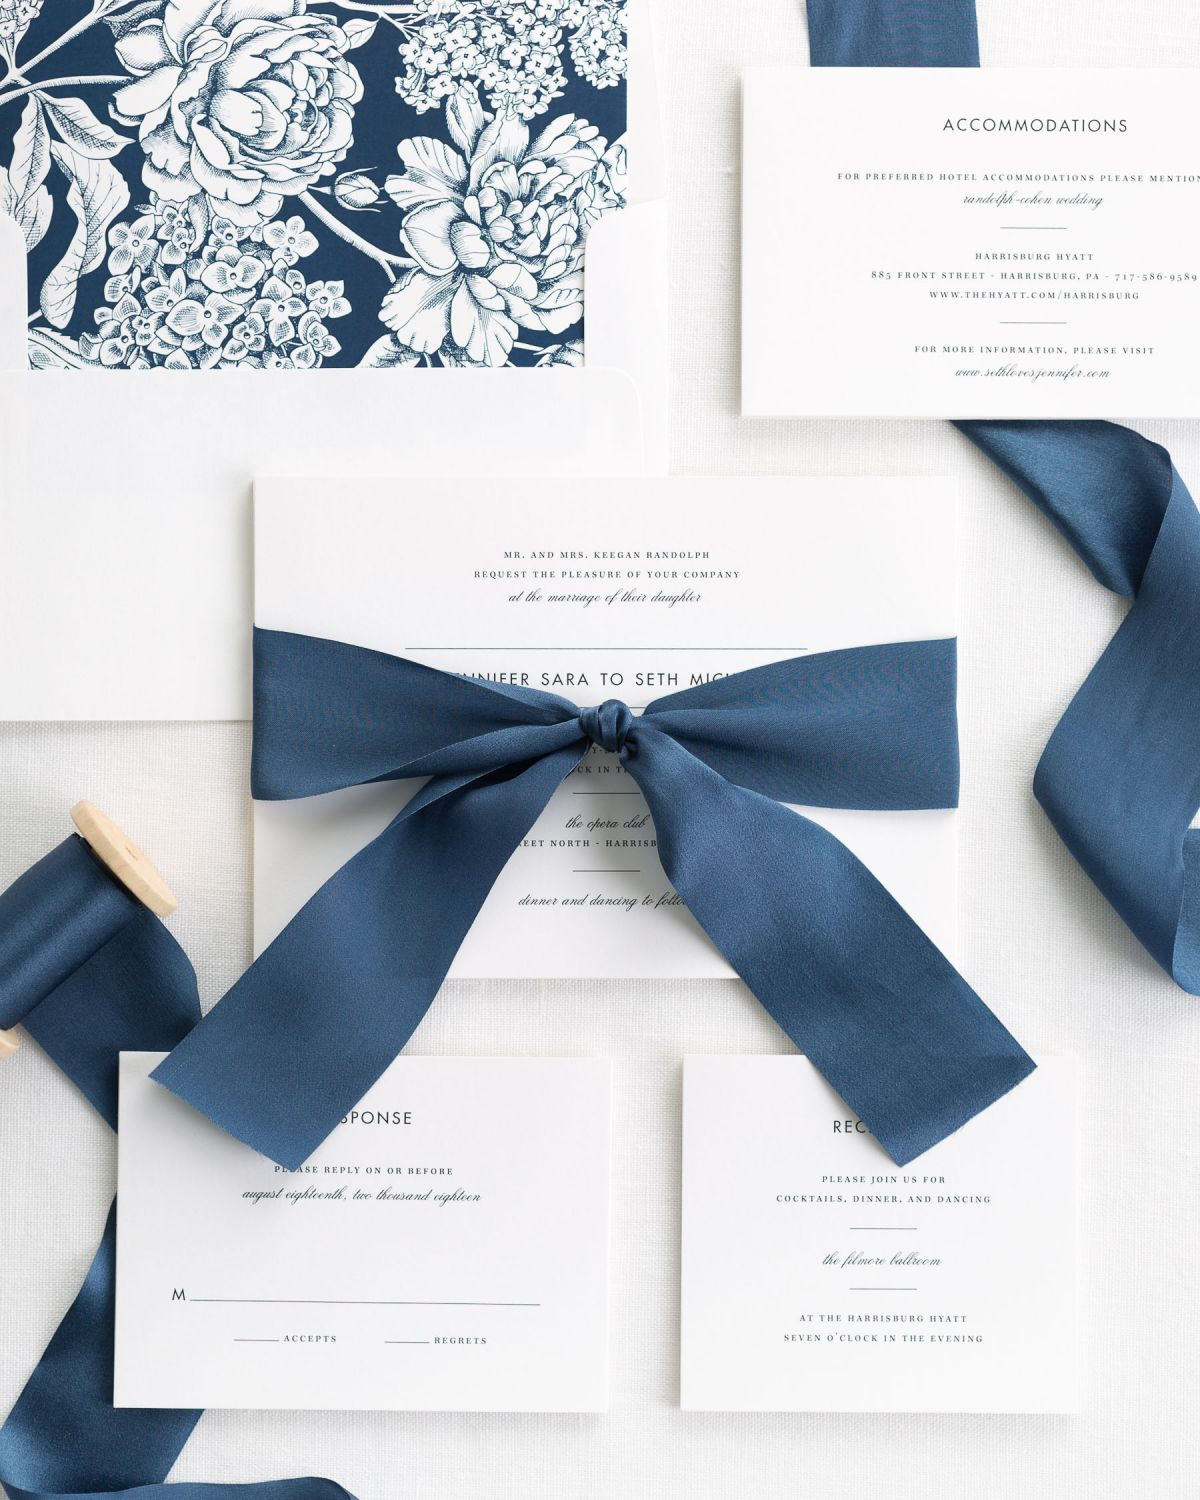 Complete Wedding Invitations with Navy Ribbon and Enclosures